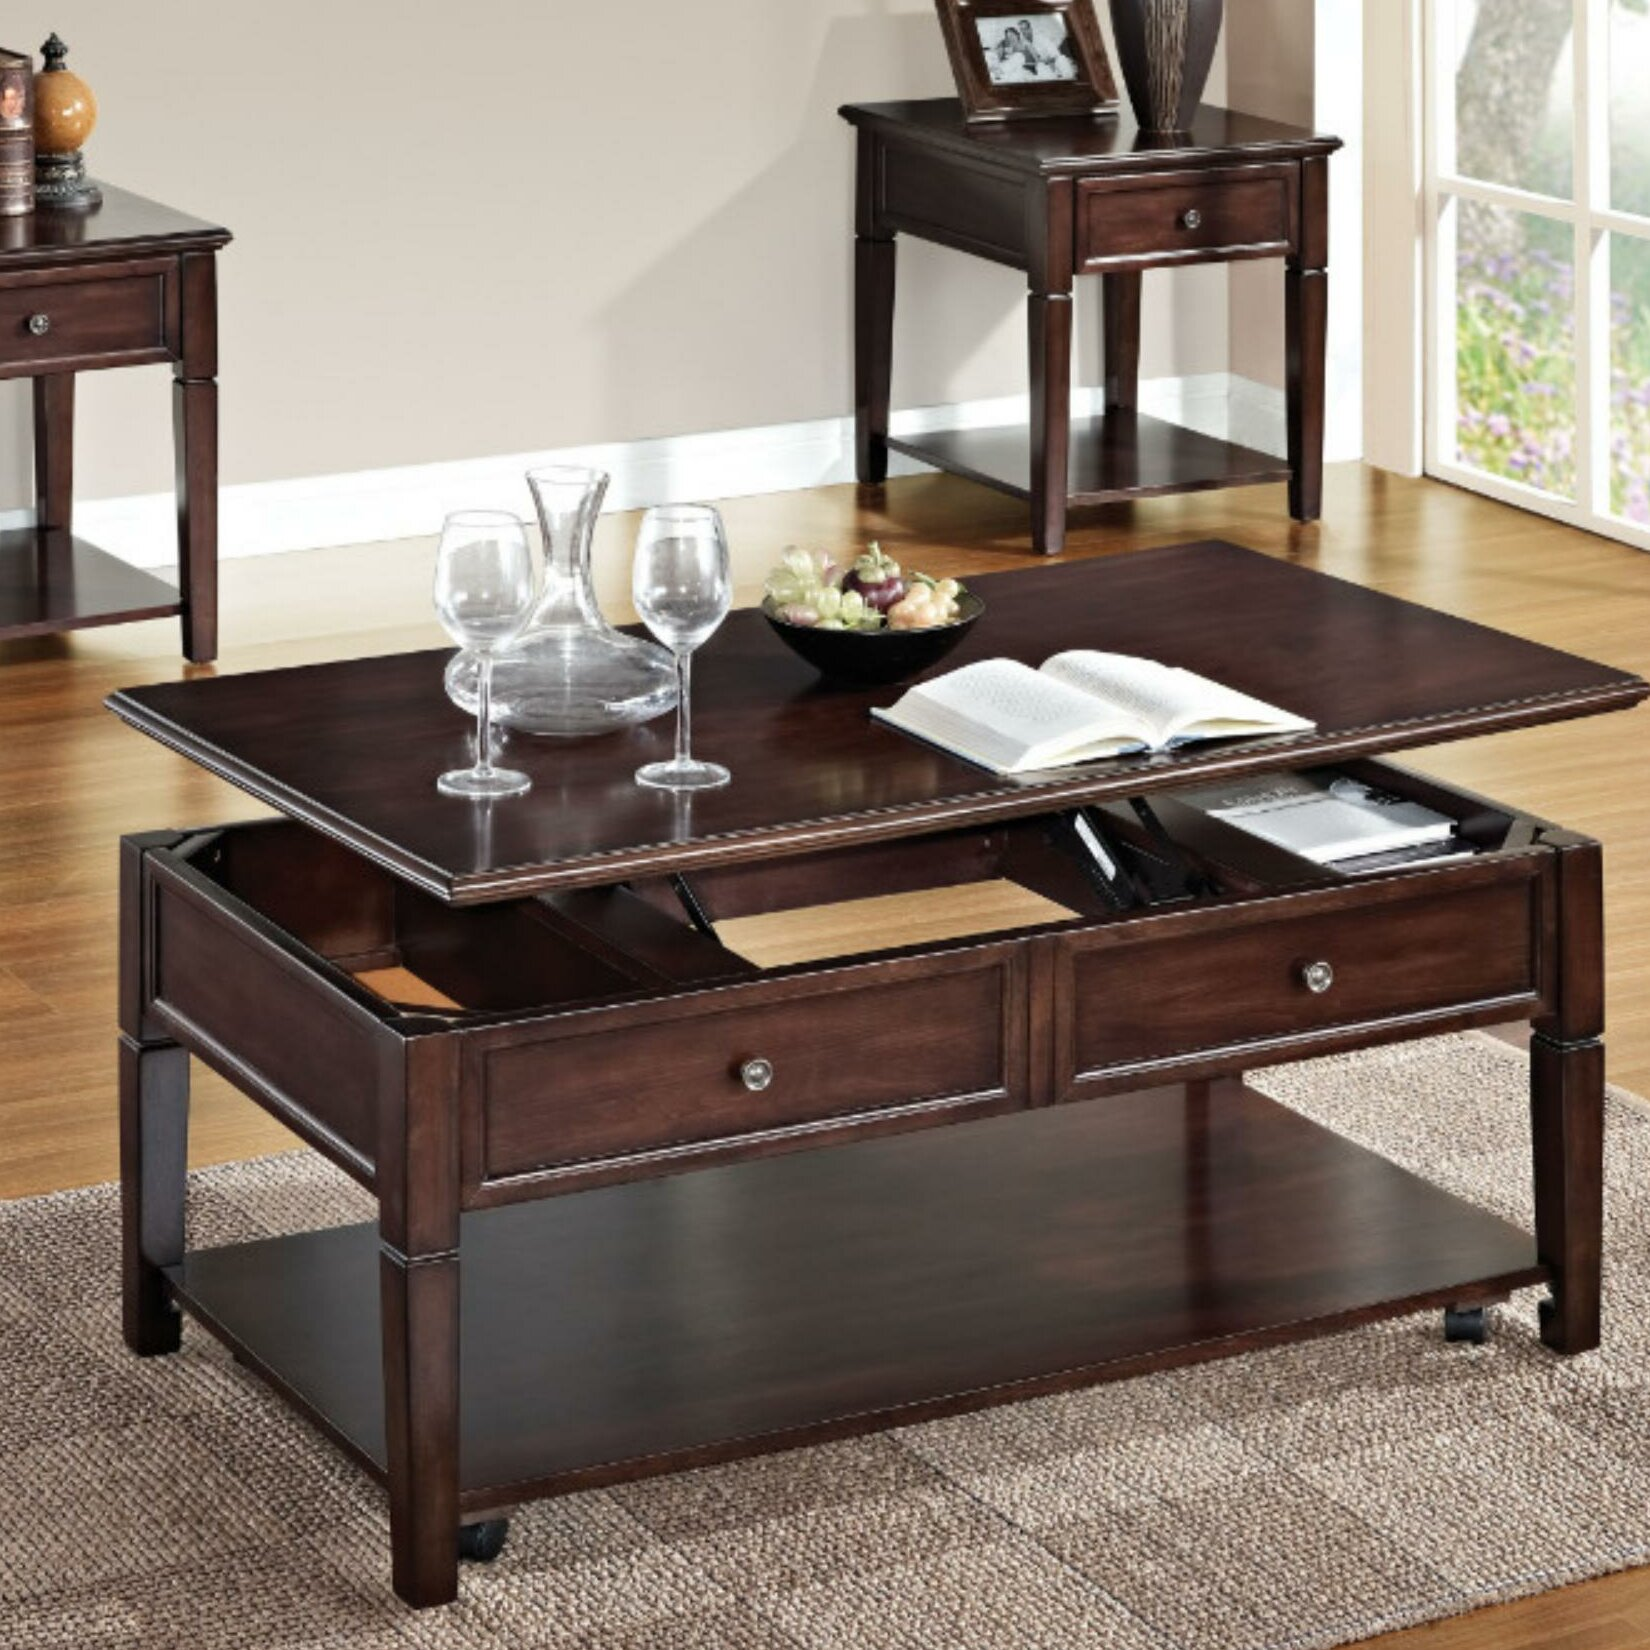 Darby Home Co Eppler Wooden Lift Top Coffee Table With Storage